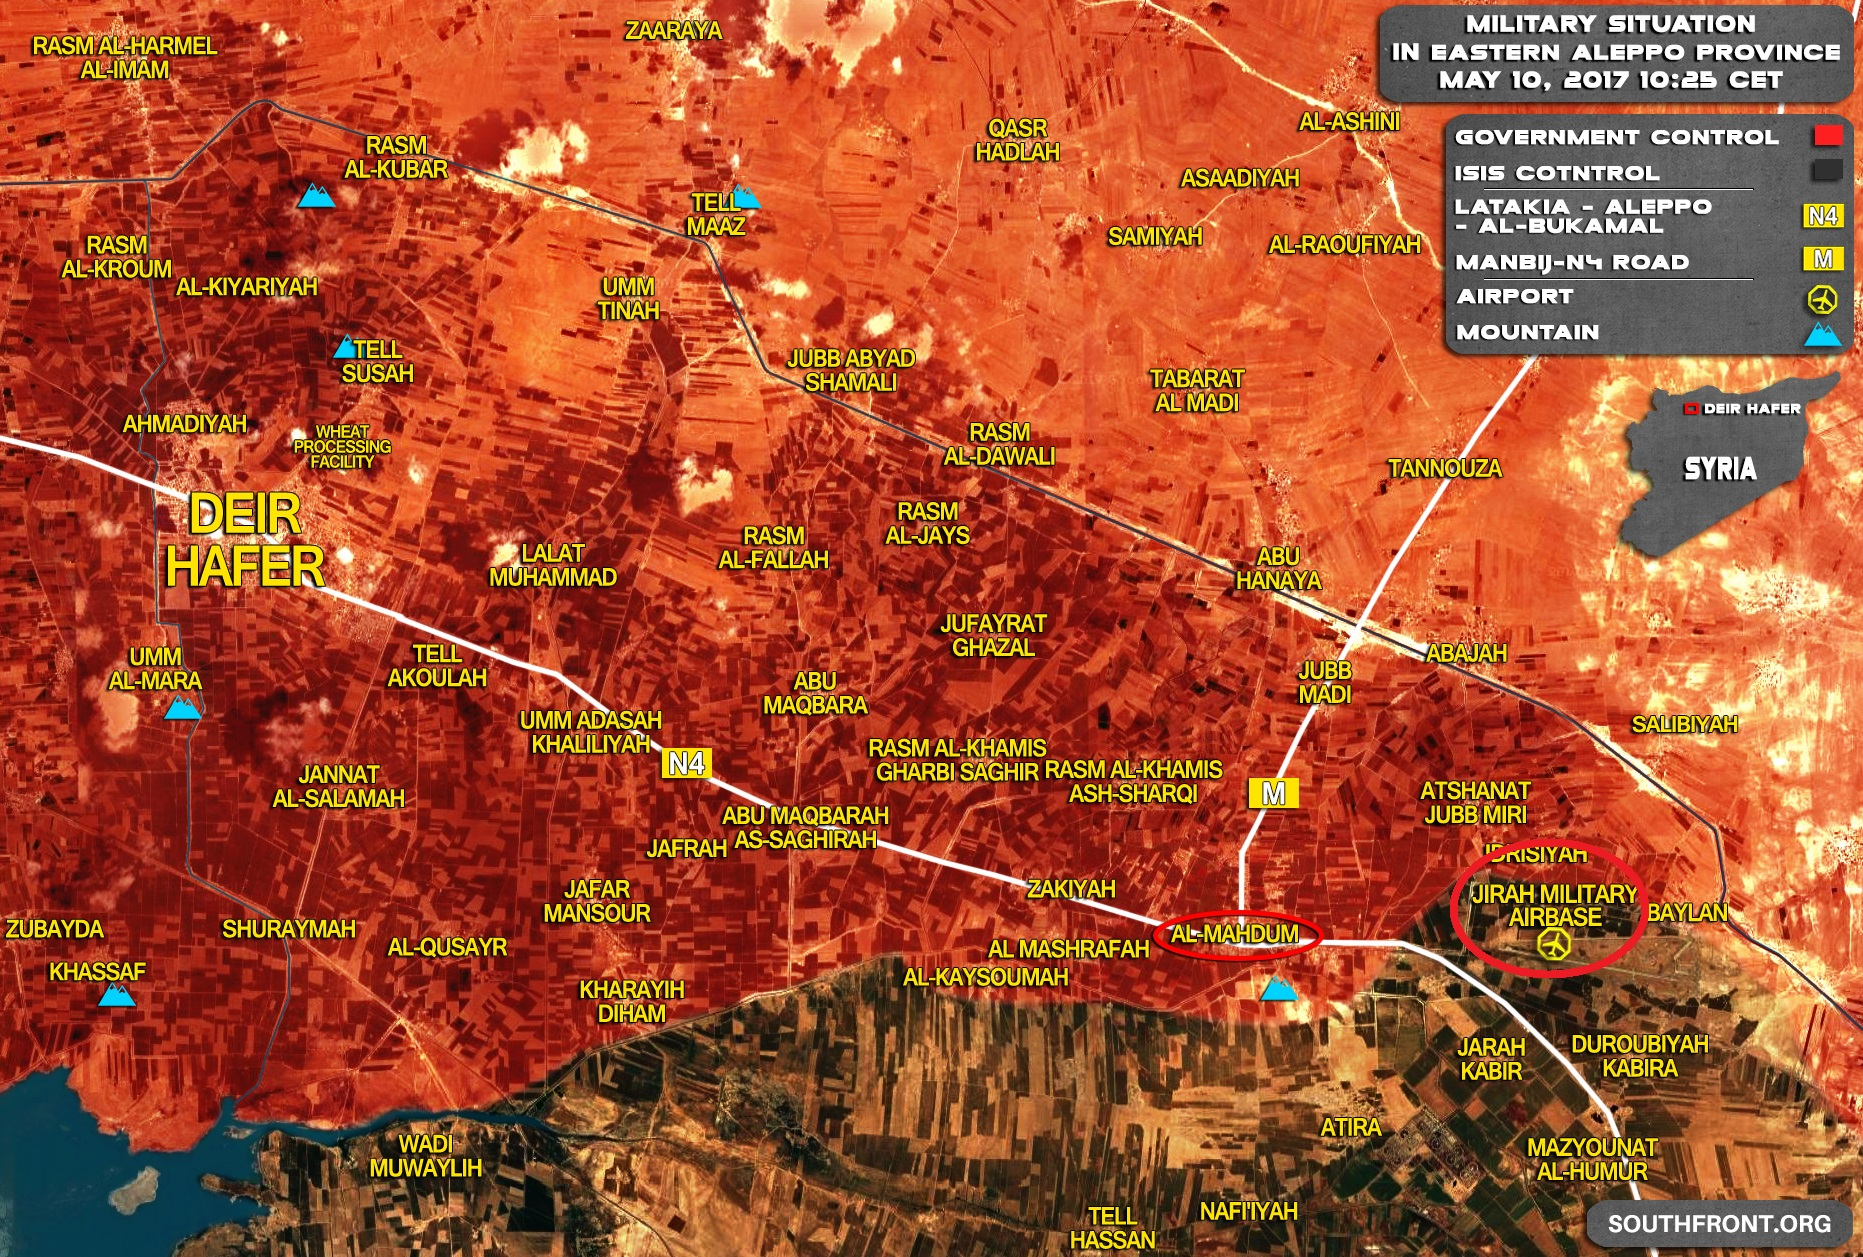 Clashes Ongoing In Vicinity In Jirah Military Airbase As Government Troops Advancing Against ISIS